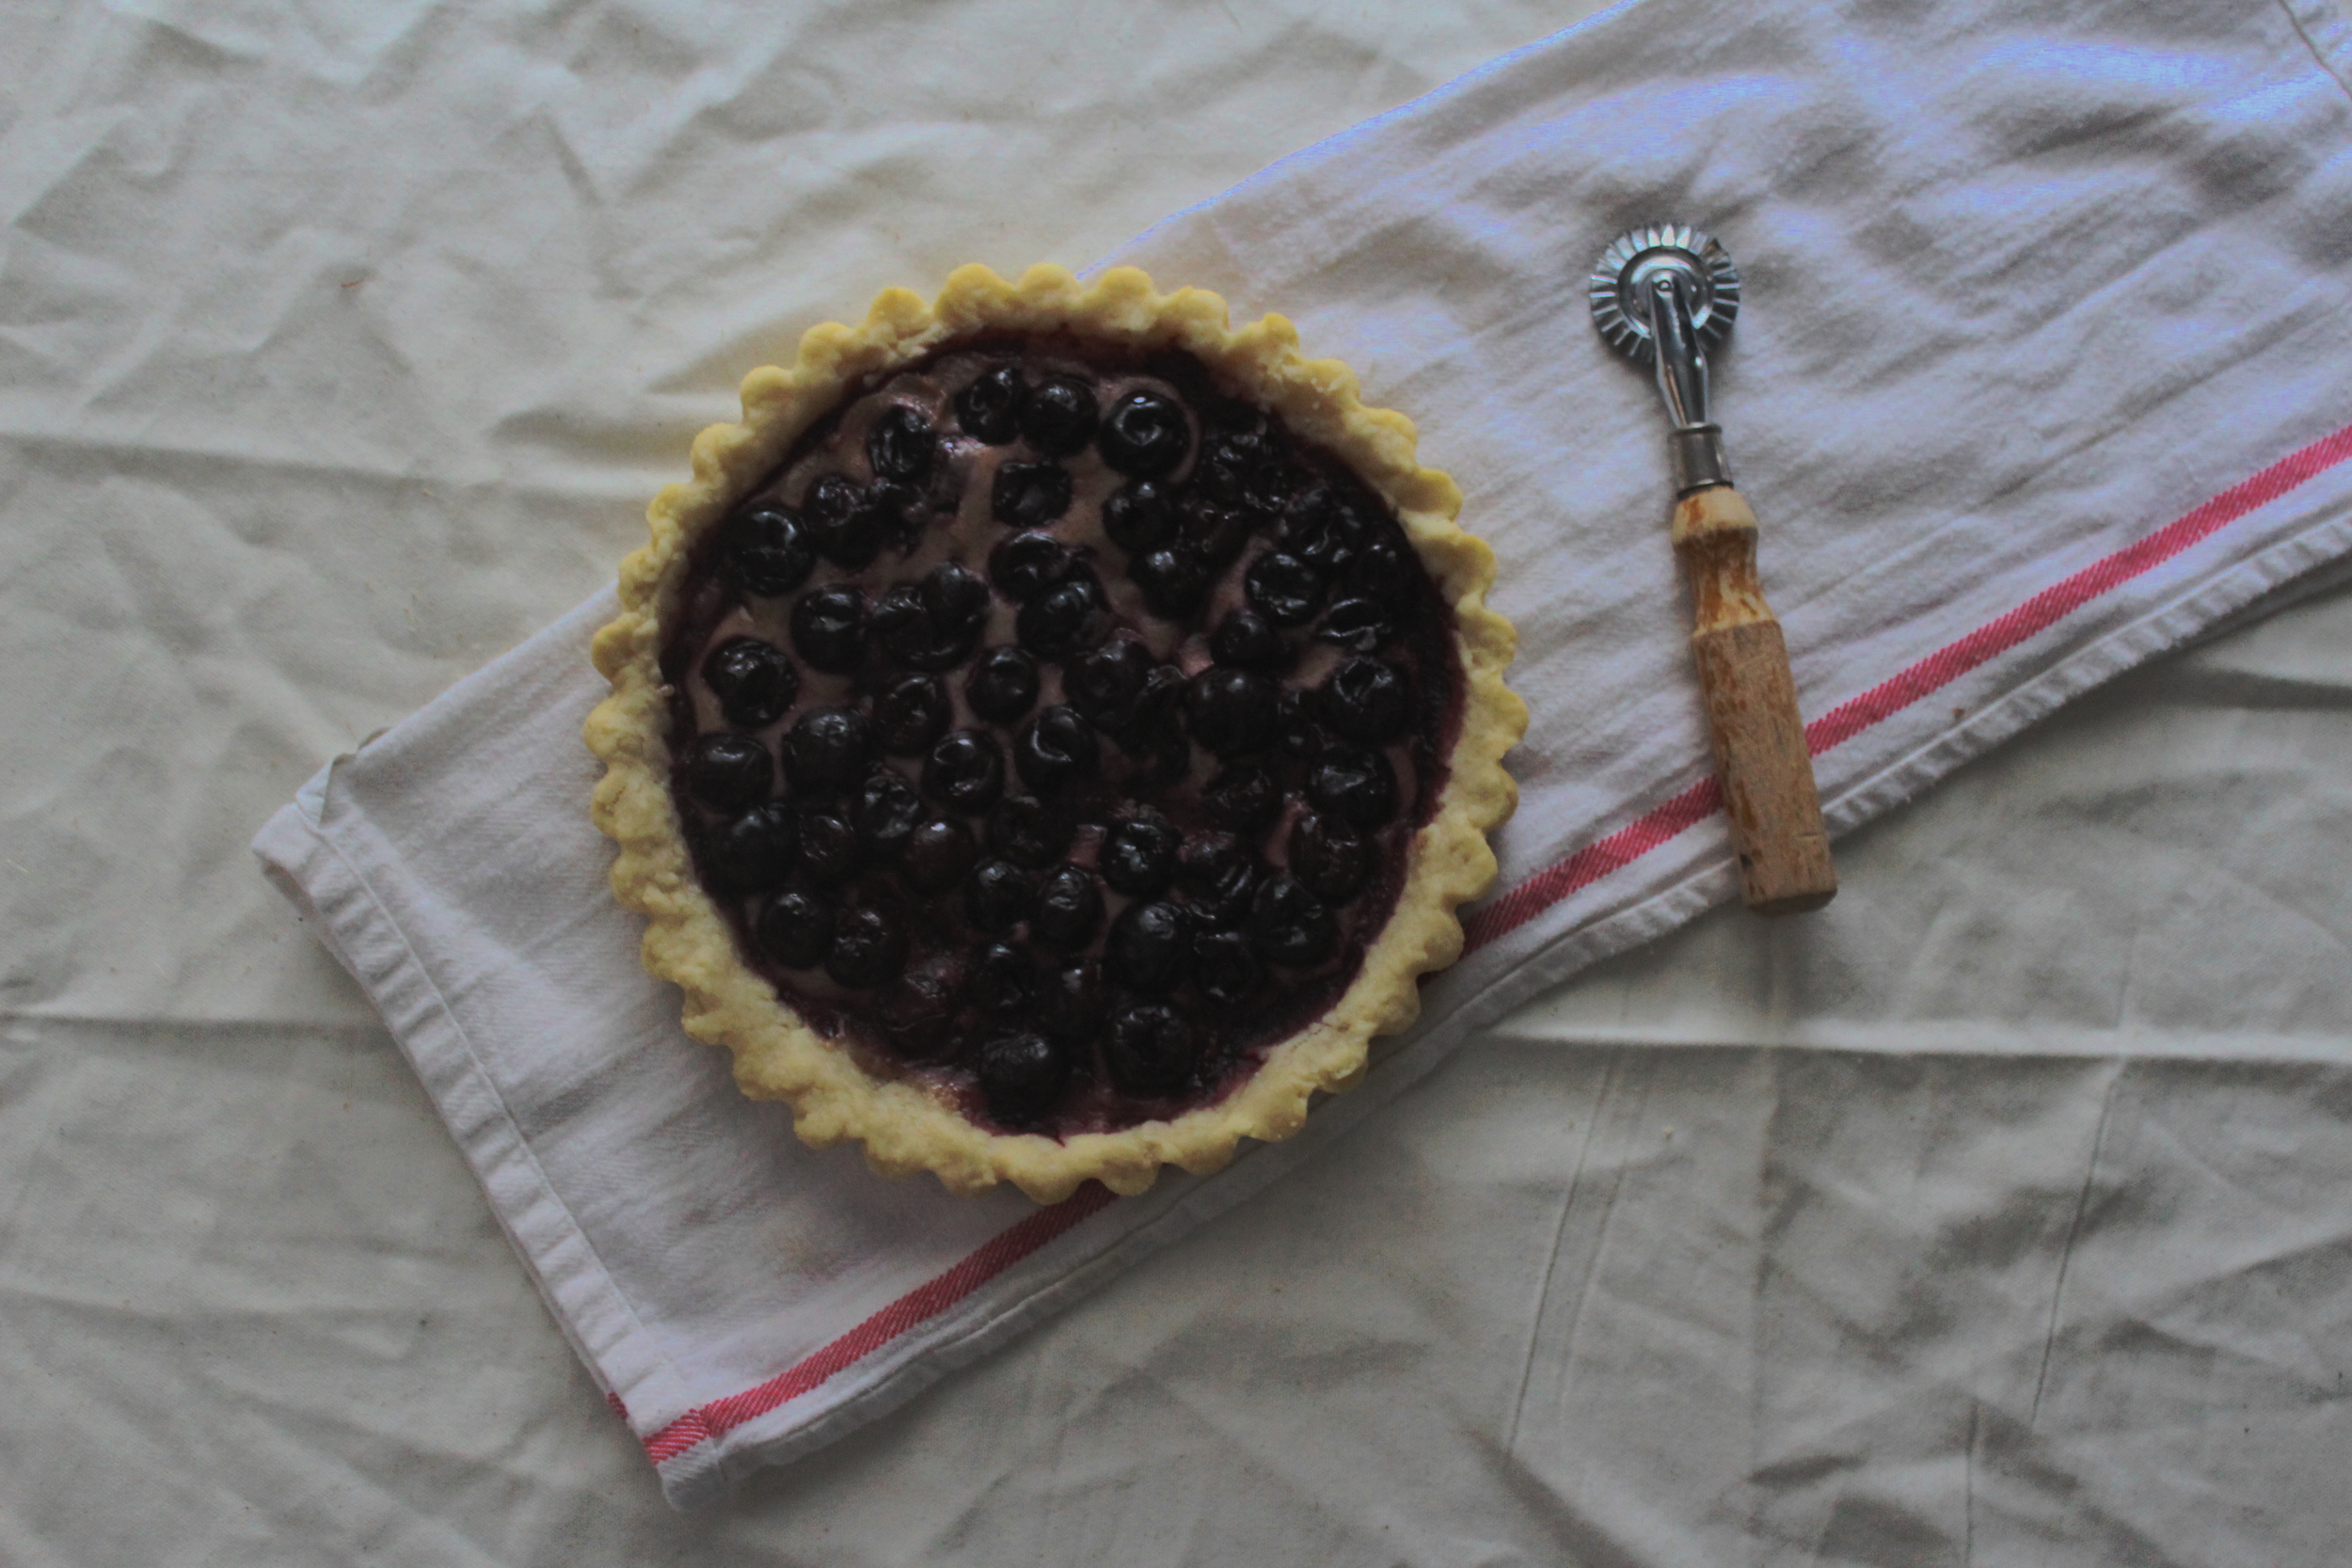 Balsamic Cherry Tart with Frangipane